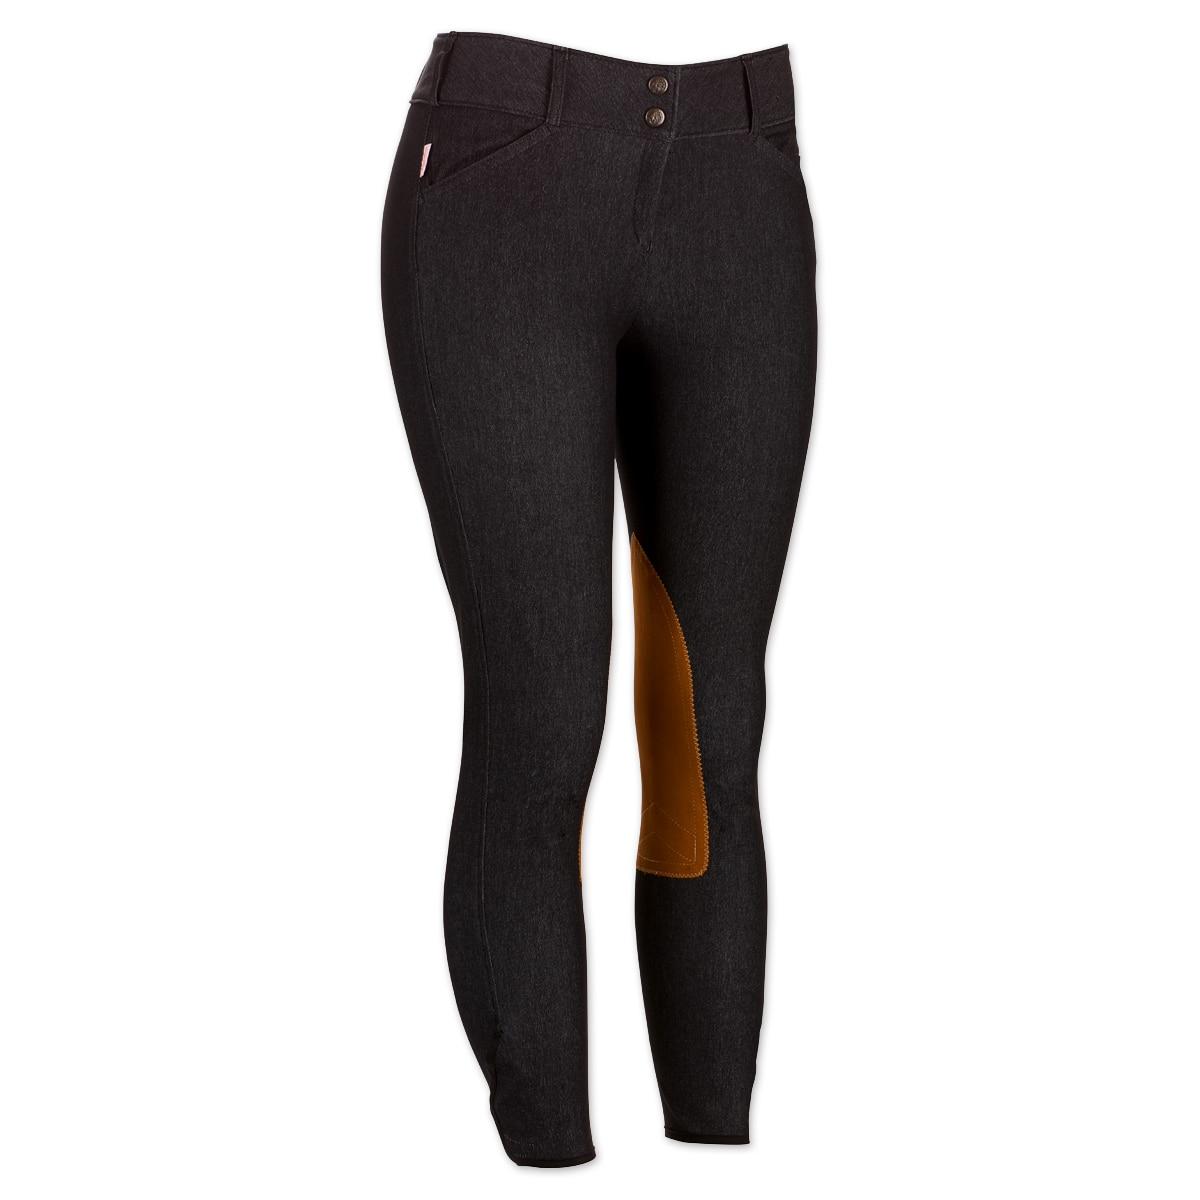 The Tailored Sportsman Denim Knee Patch Breech - Limited Availability